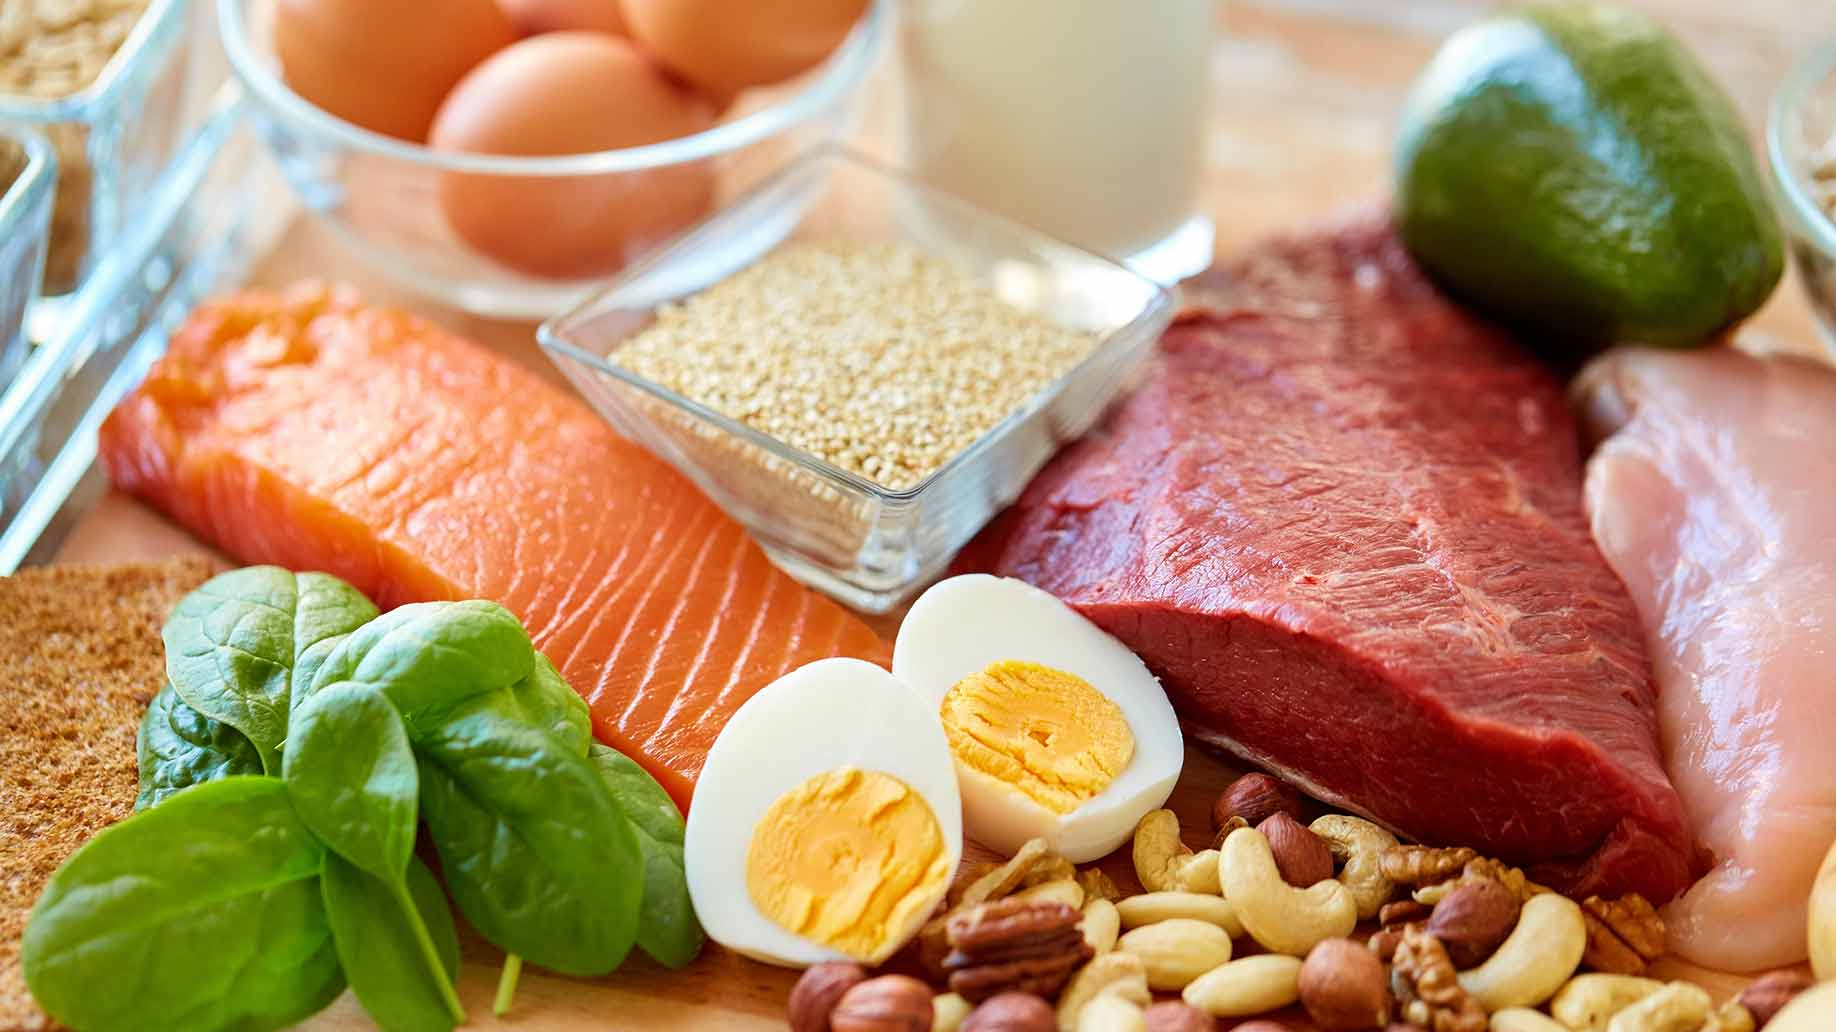 tyrosine meat eggs nuts boost increase energy levels natural remedies